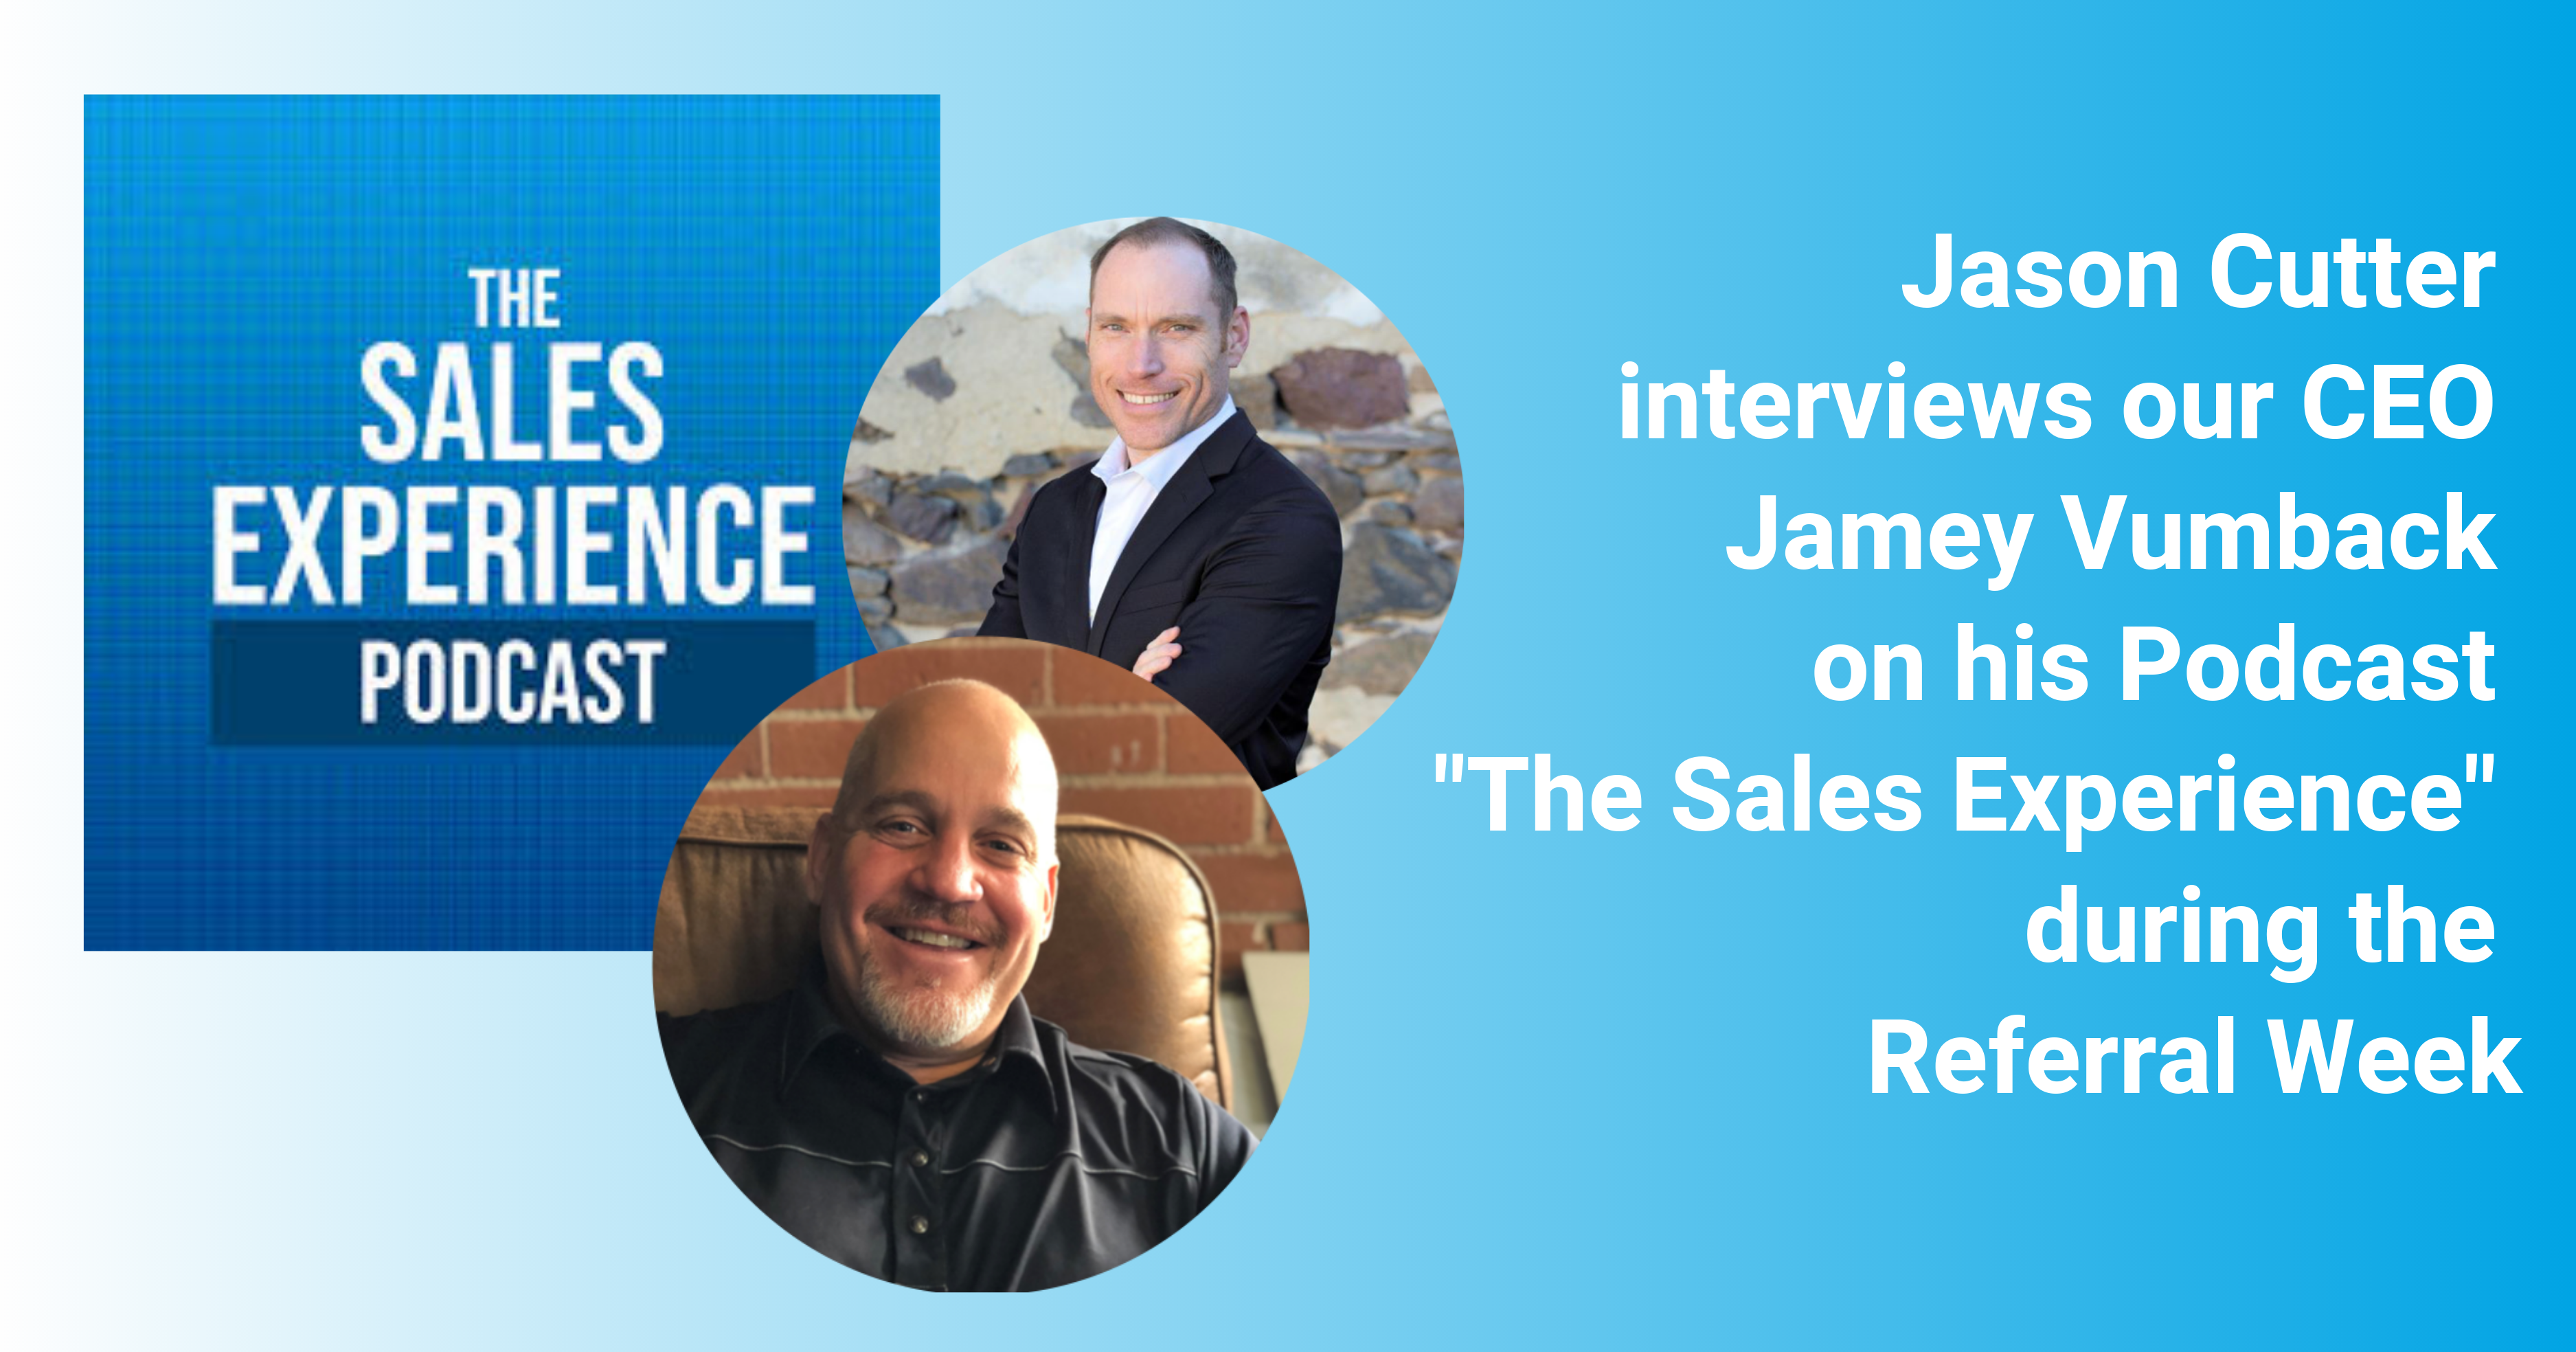 The Sales Experience with Jason Cutter: Referrals Week